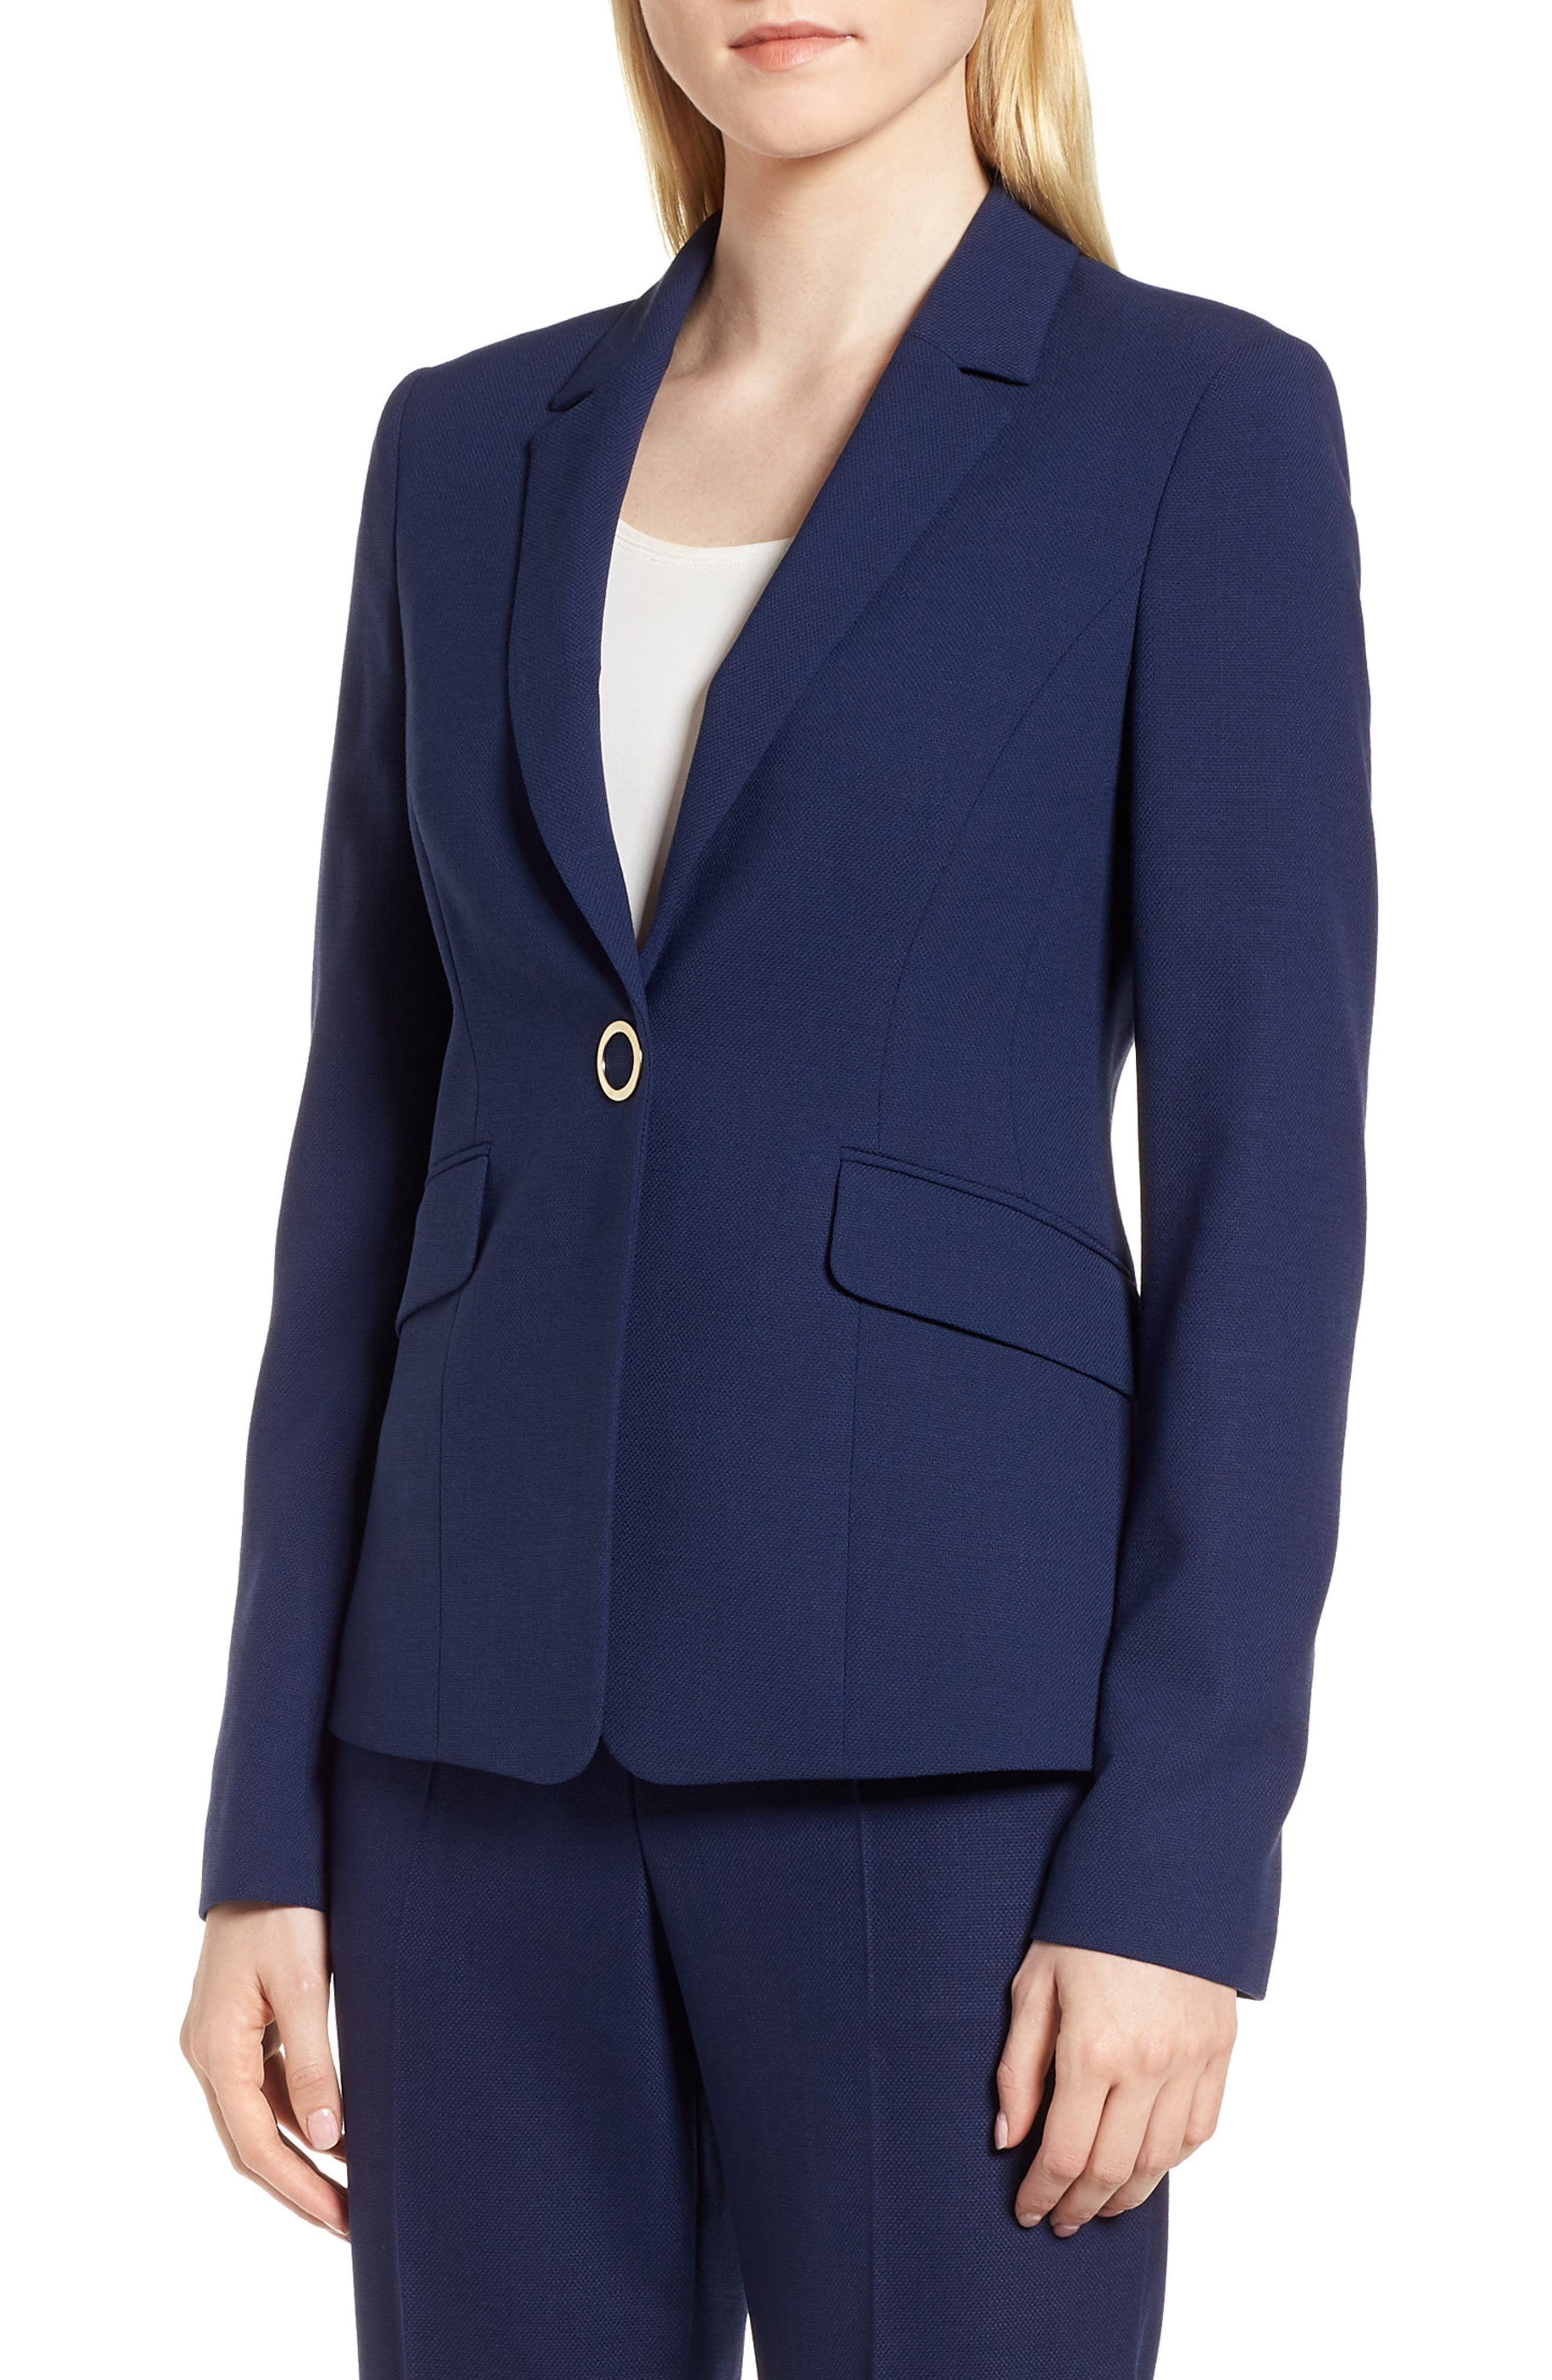 Jibalena Textured Stretch Wool Suit Jacket,                             Main thumbnail 1, color,                             Nautical